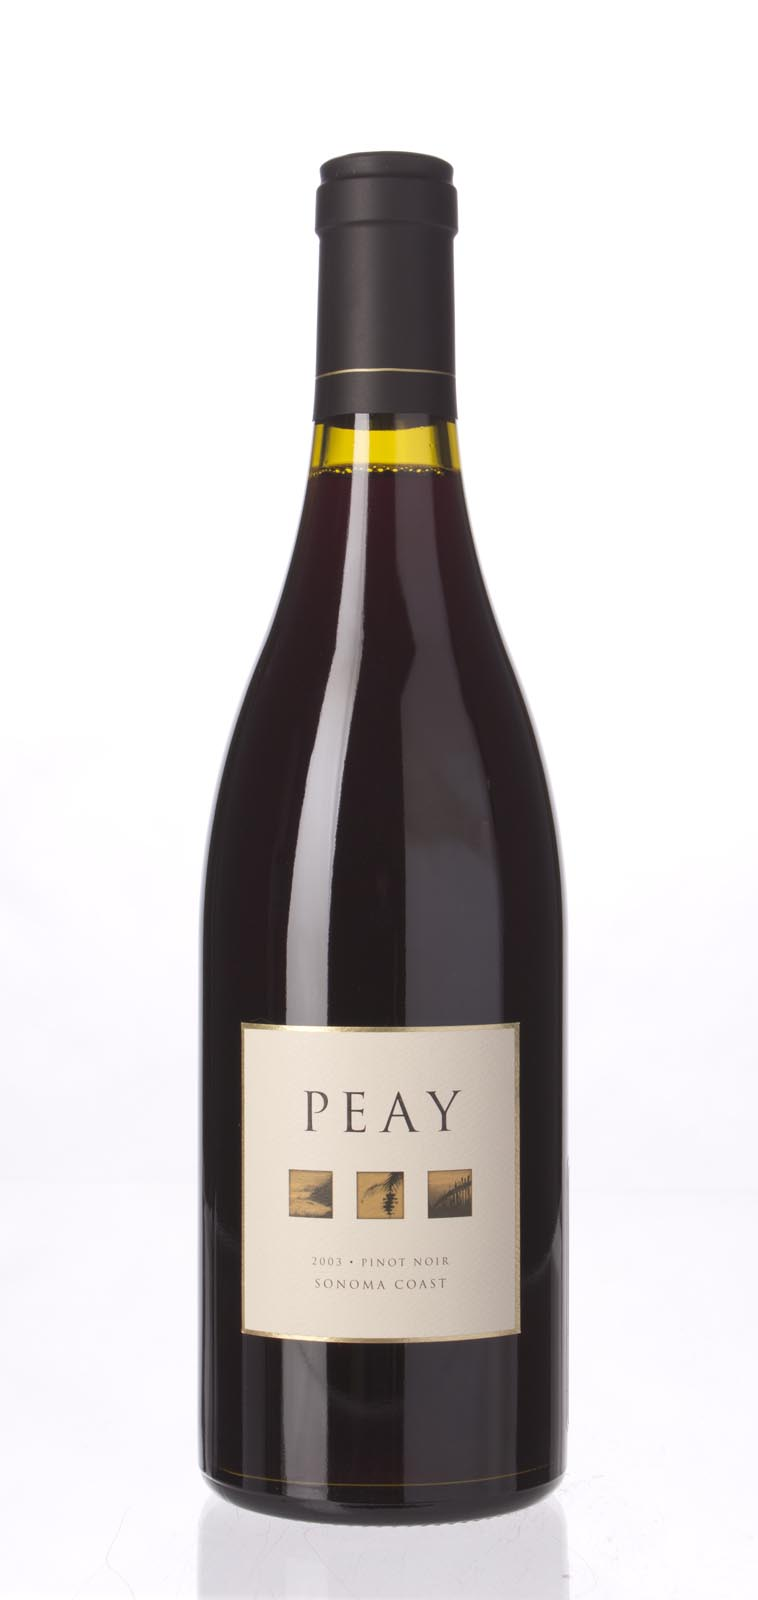 Peay Vineyards Pinot Noir Sonoma Coast 2003, 750mL () from The BPW - Merchants of rare and fine wines.